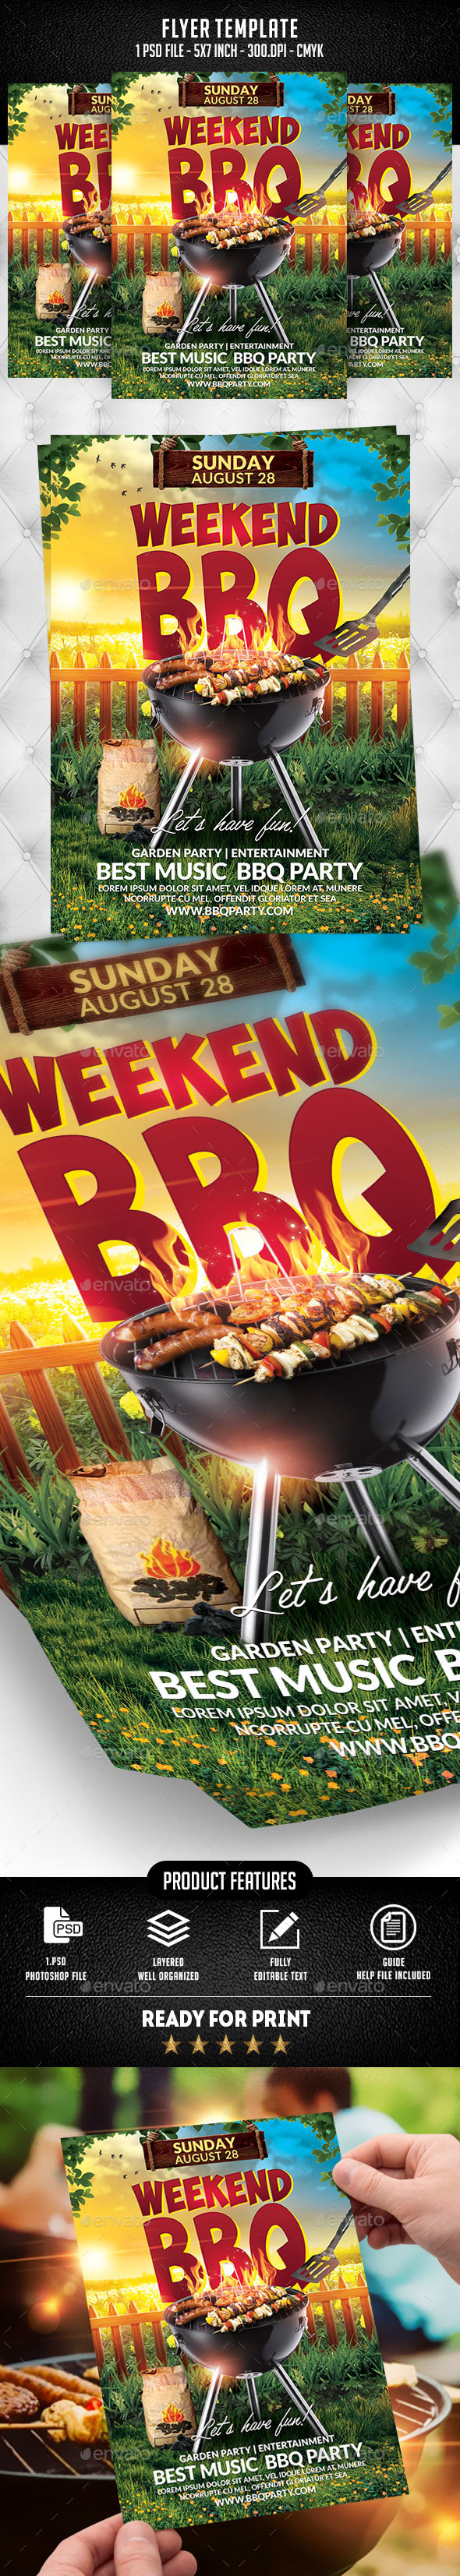 Weekend BBQ Flyer Template - Flyers Print Templates